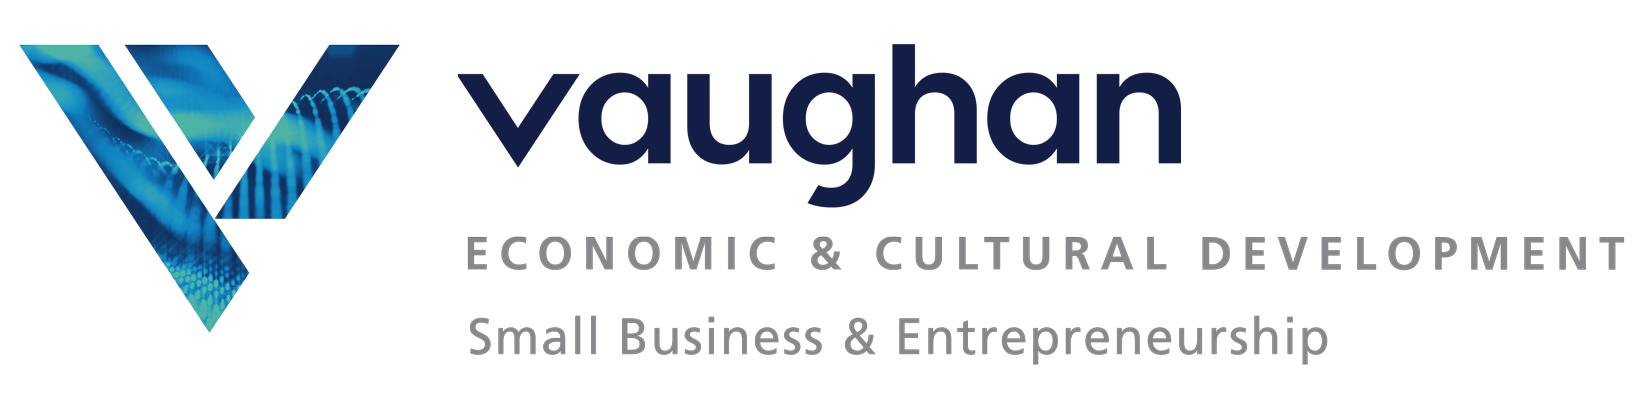 Vaughan Small Business and Entrepreneurship logo